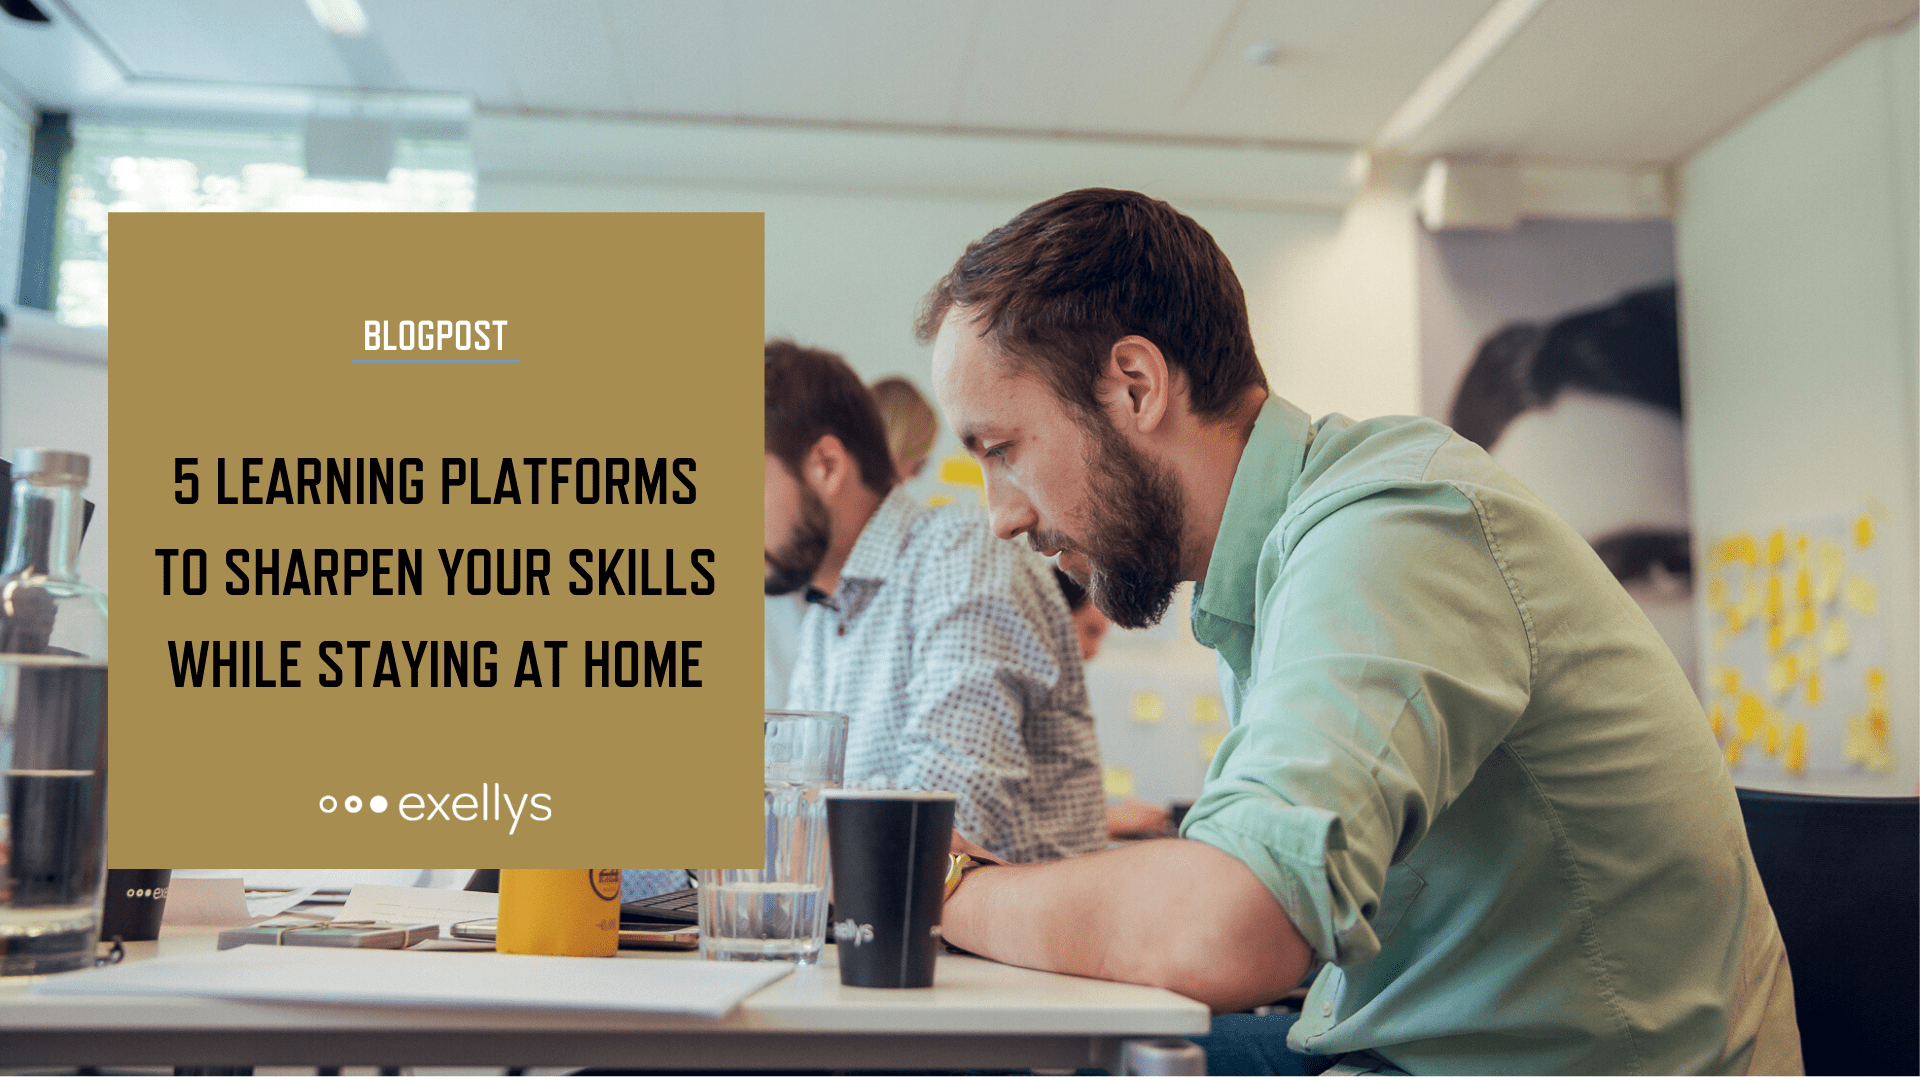 5 learning platforms to sharpen your skills while staying at home - Social share image